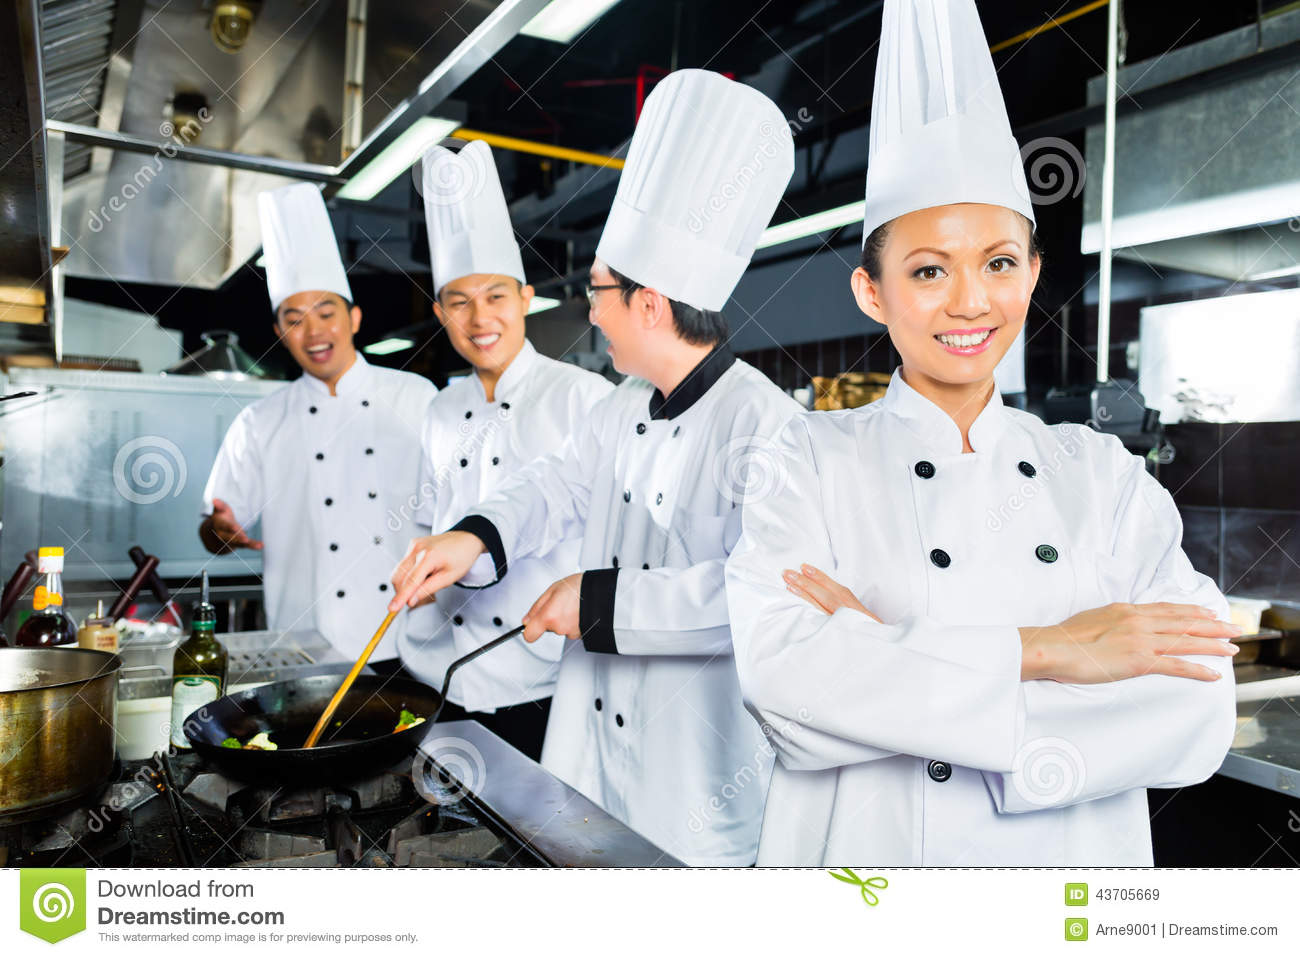 indonesian chefs along with other cooks in restaurant or hotel kitchen